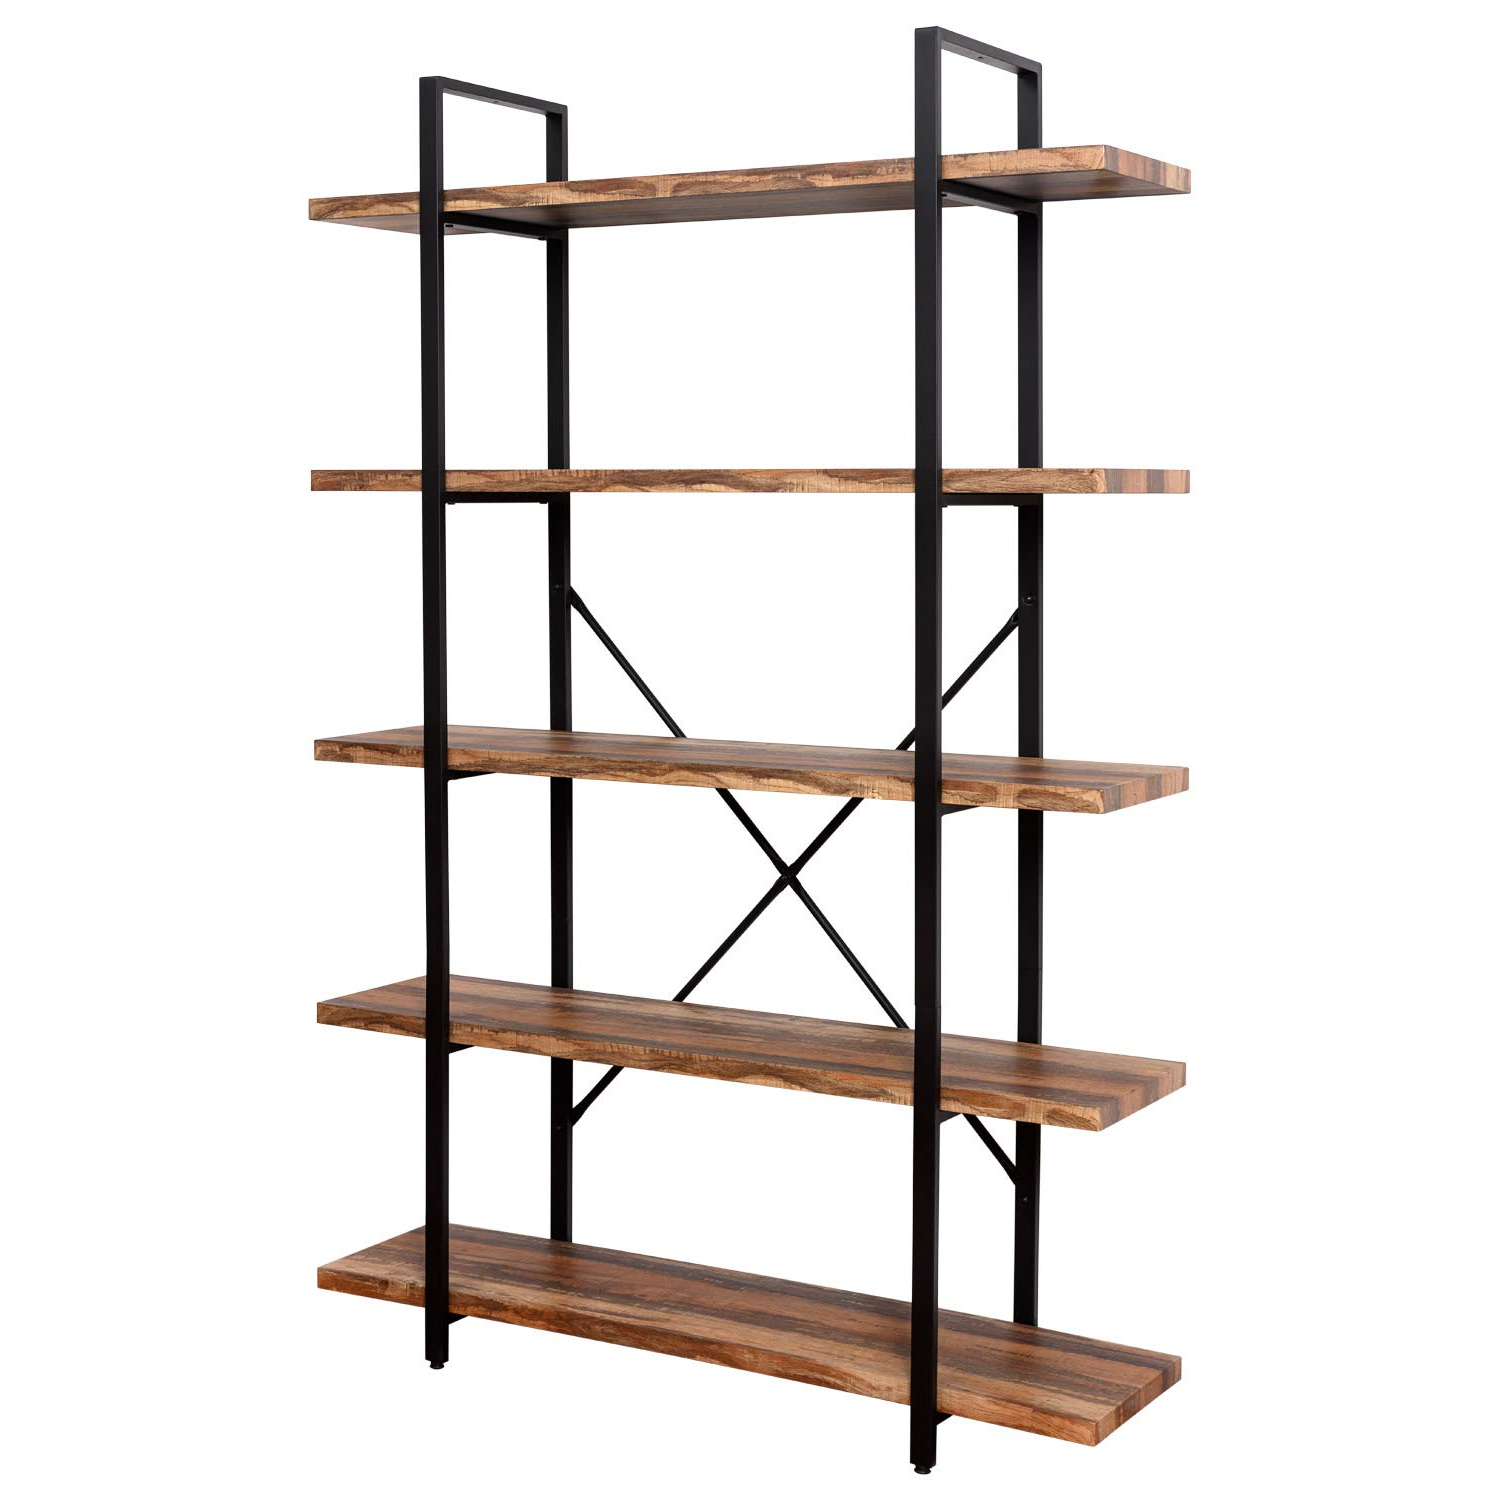 Beckett Corner Bookcases Within Most Current Ironck Bookshelf And Bookcase 5 Tier, 130Lbs/shelf Load Capacity,  Industrial Bookshelves Home Office Furniture, Wood And Metal Frame … (Gallery 17 of 20)